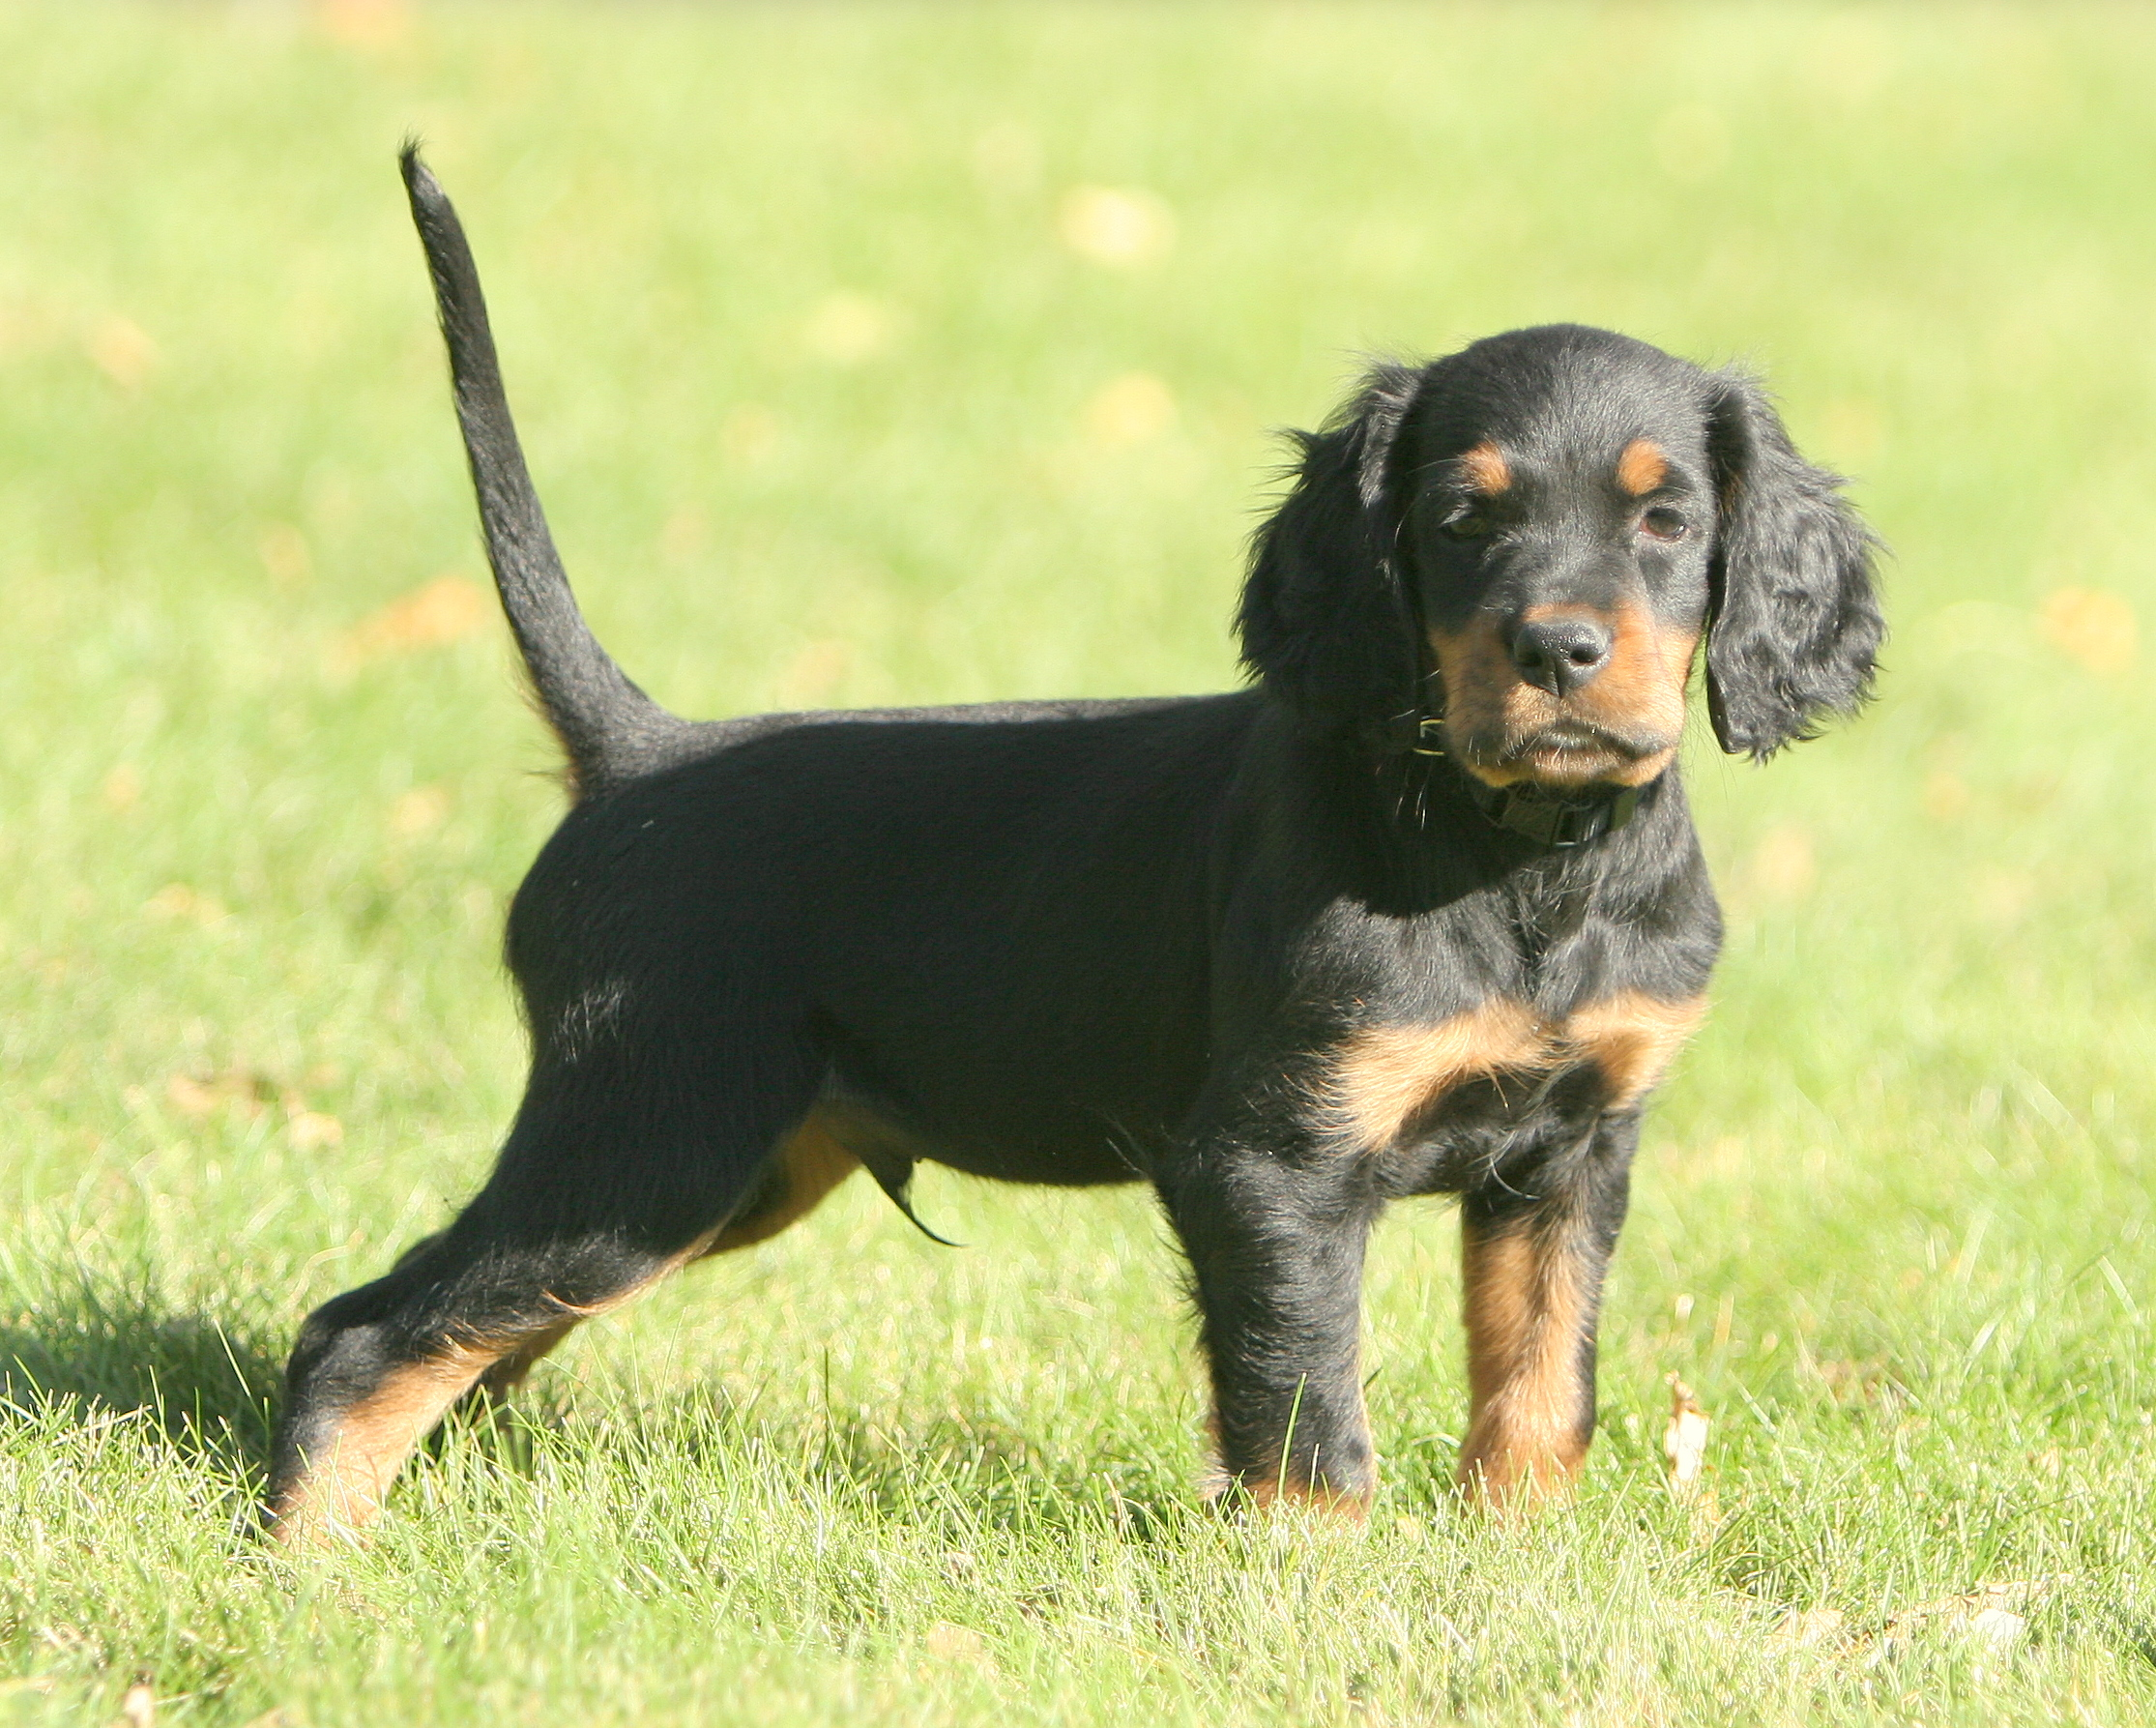 Cute Gordon Setter Puppy Photo And Wallpaper Beautiful